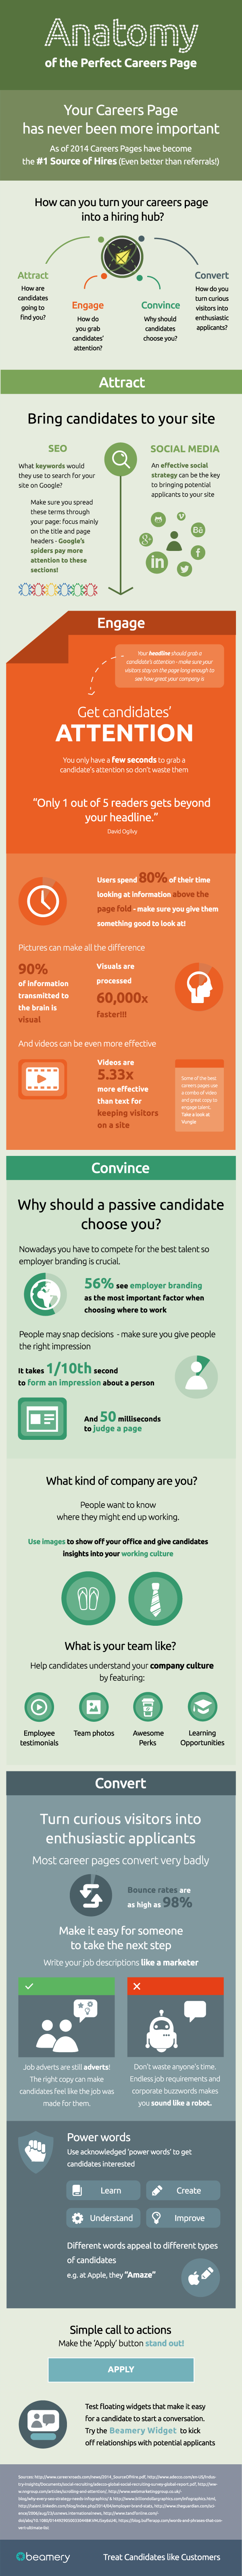 Anatomy of the Perfect Careers Page